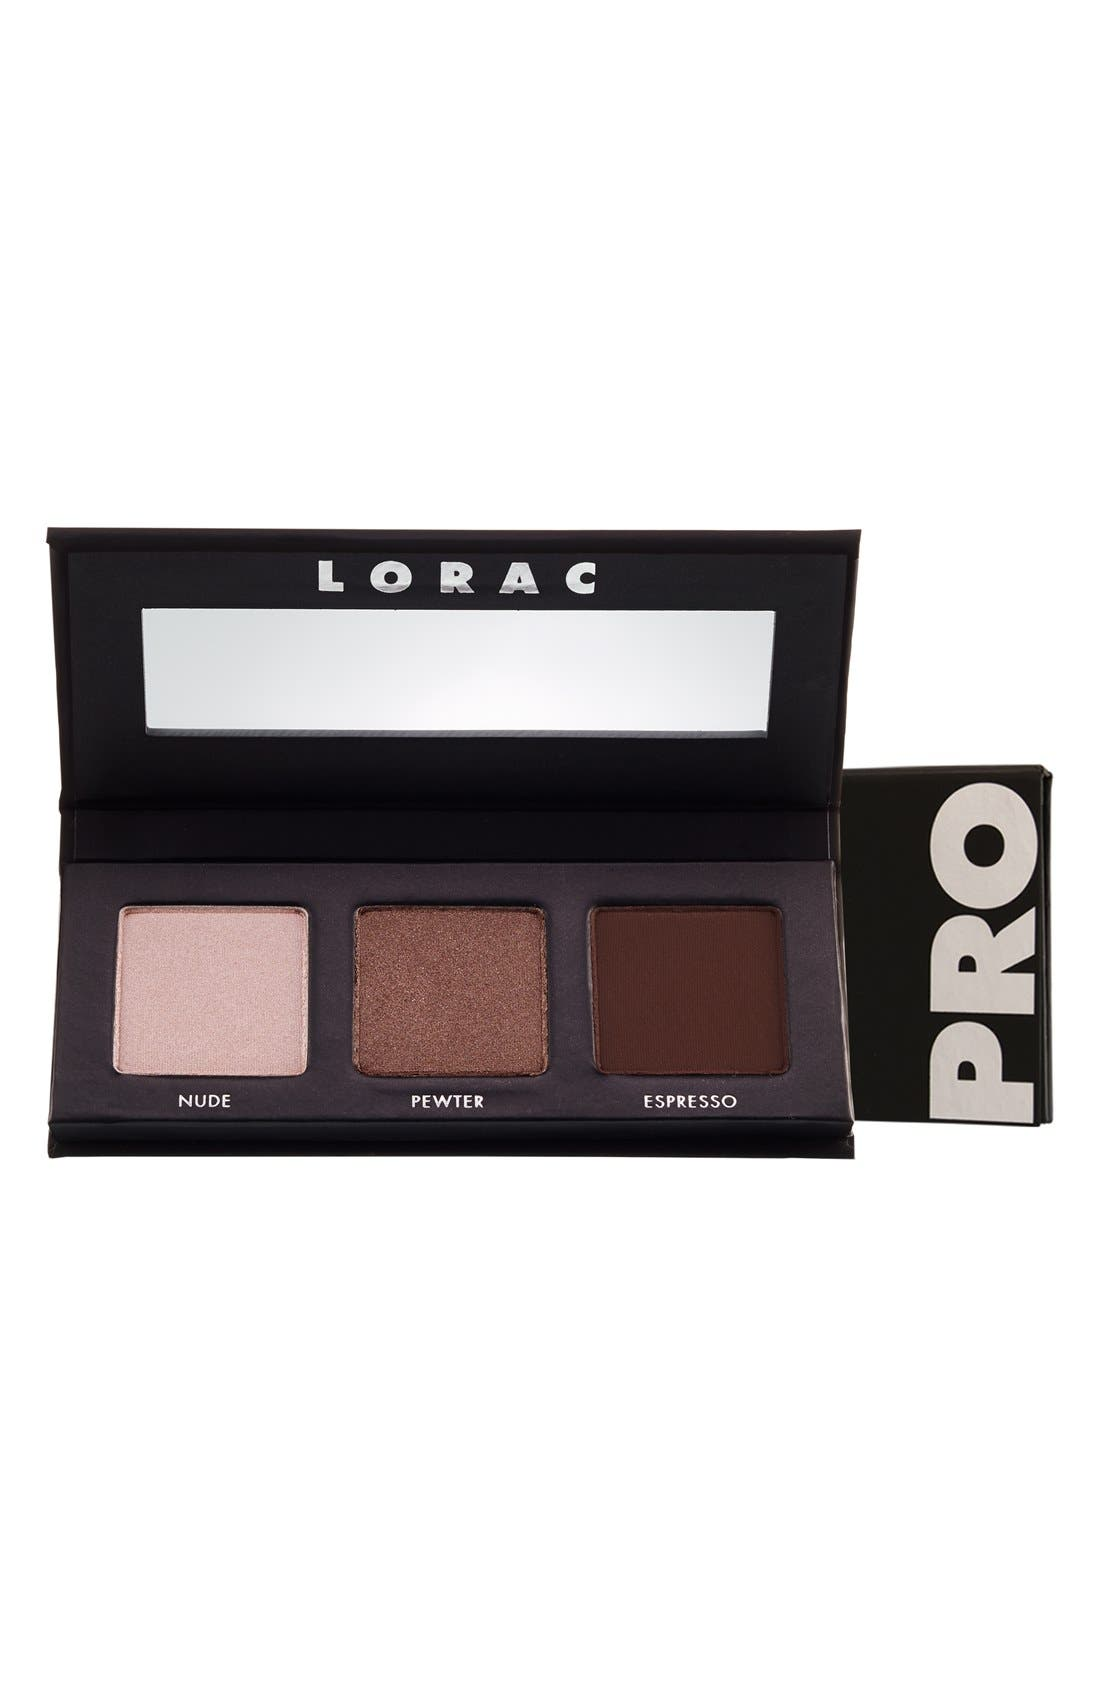 LORAC 'Pocket PRO' Palette ($57 Value)